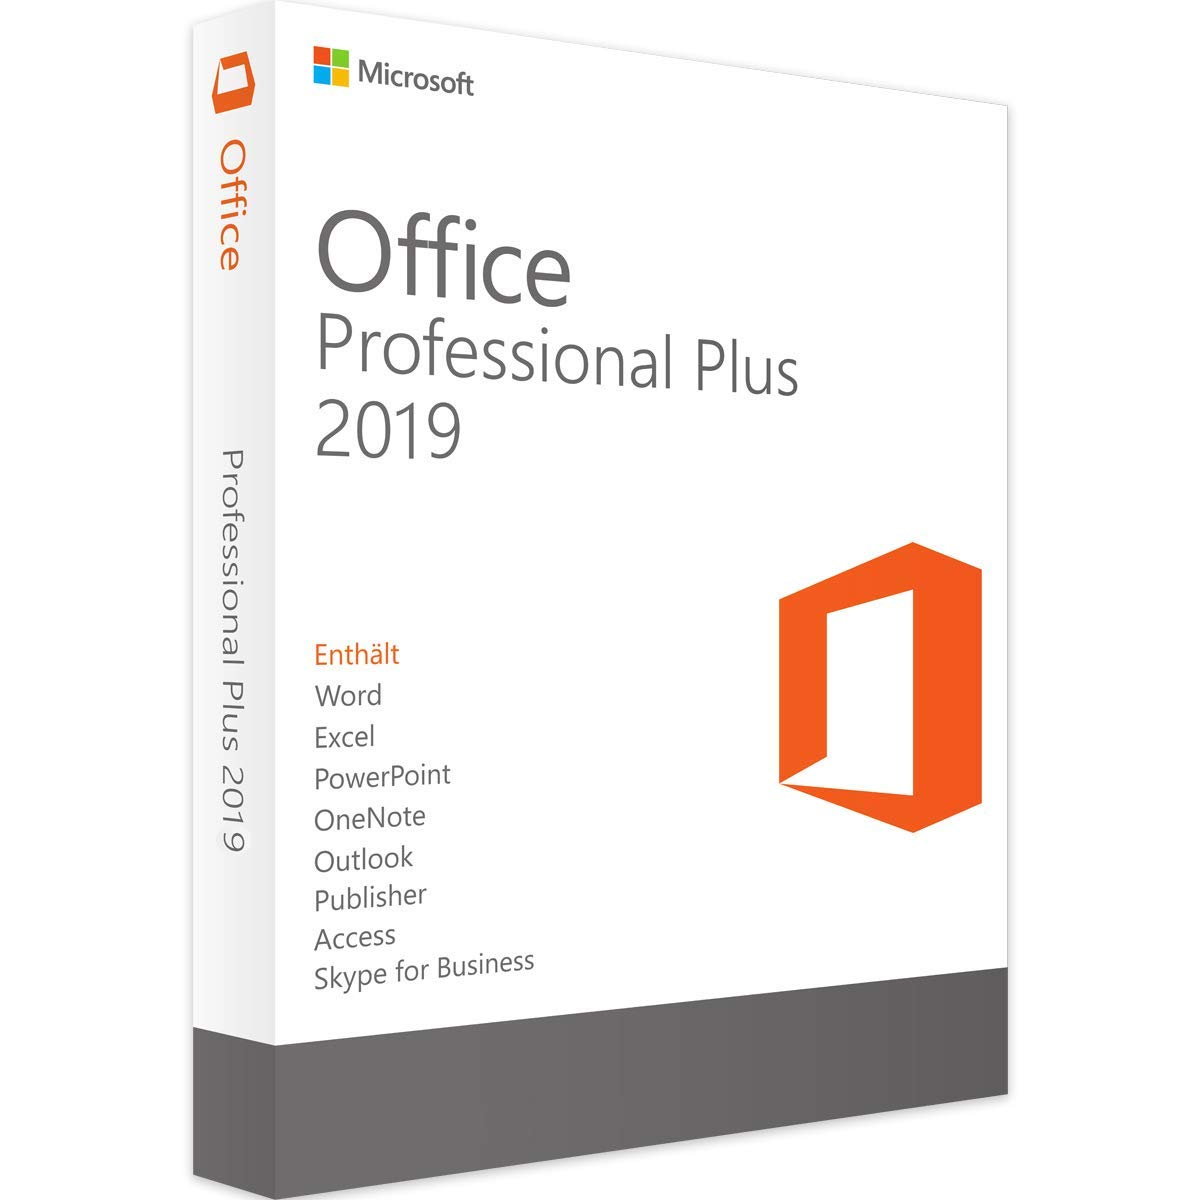 How much is a Office Professional Plus 2019?